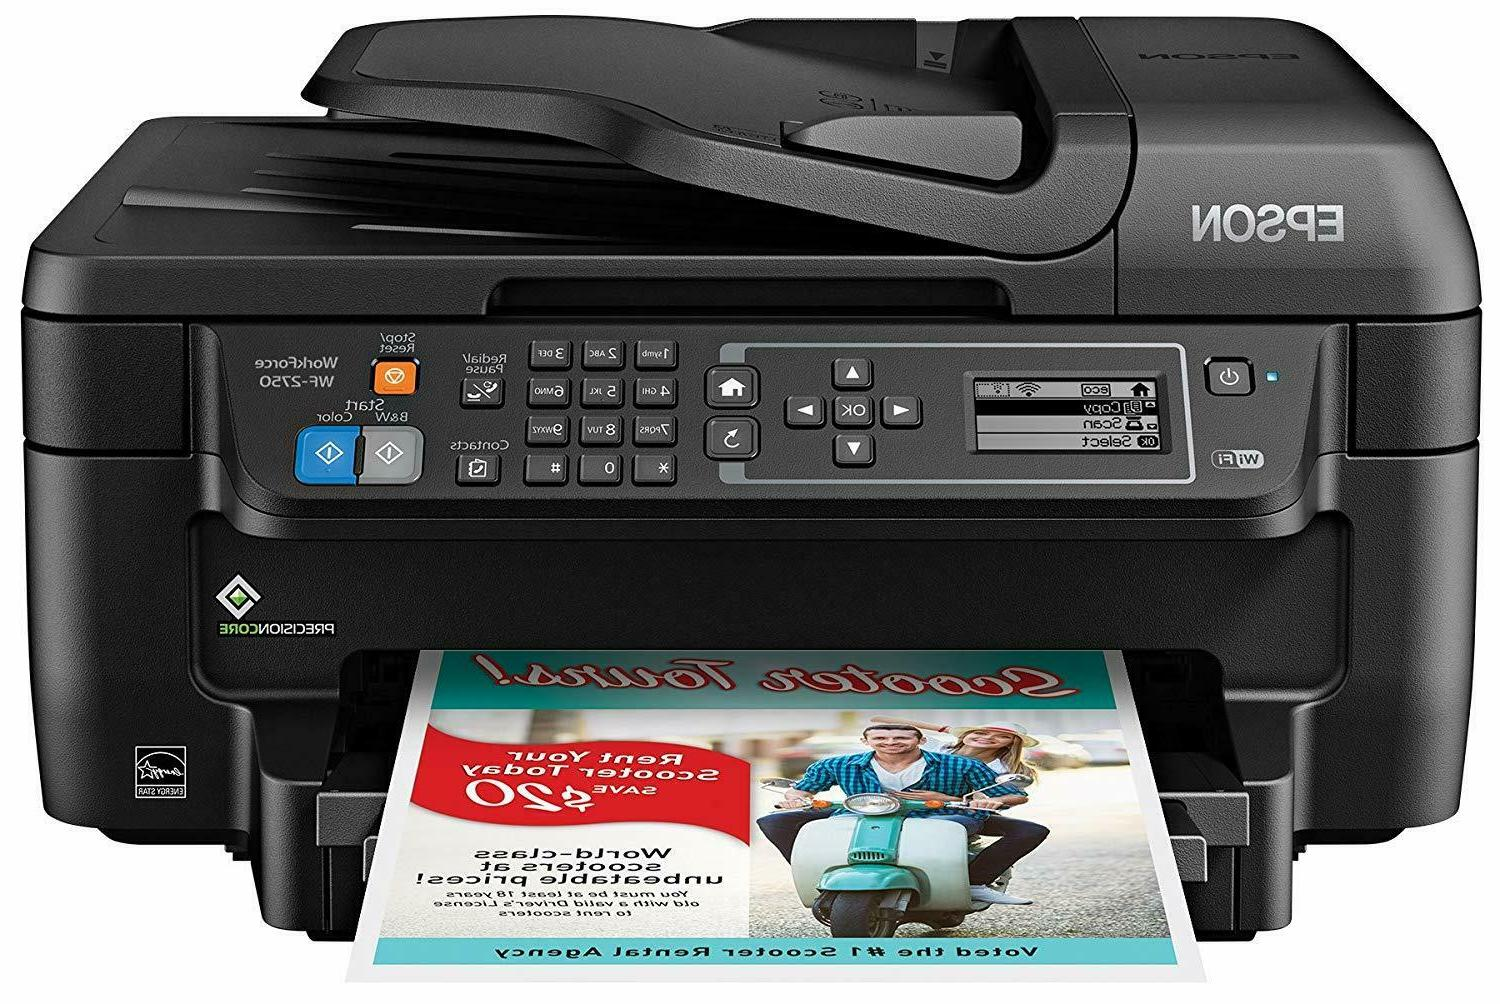 wf 2750 printer fax scanner copier all